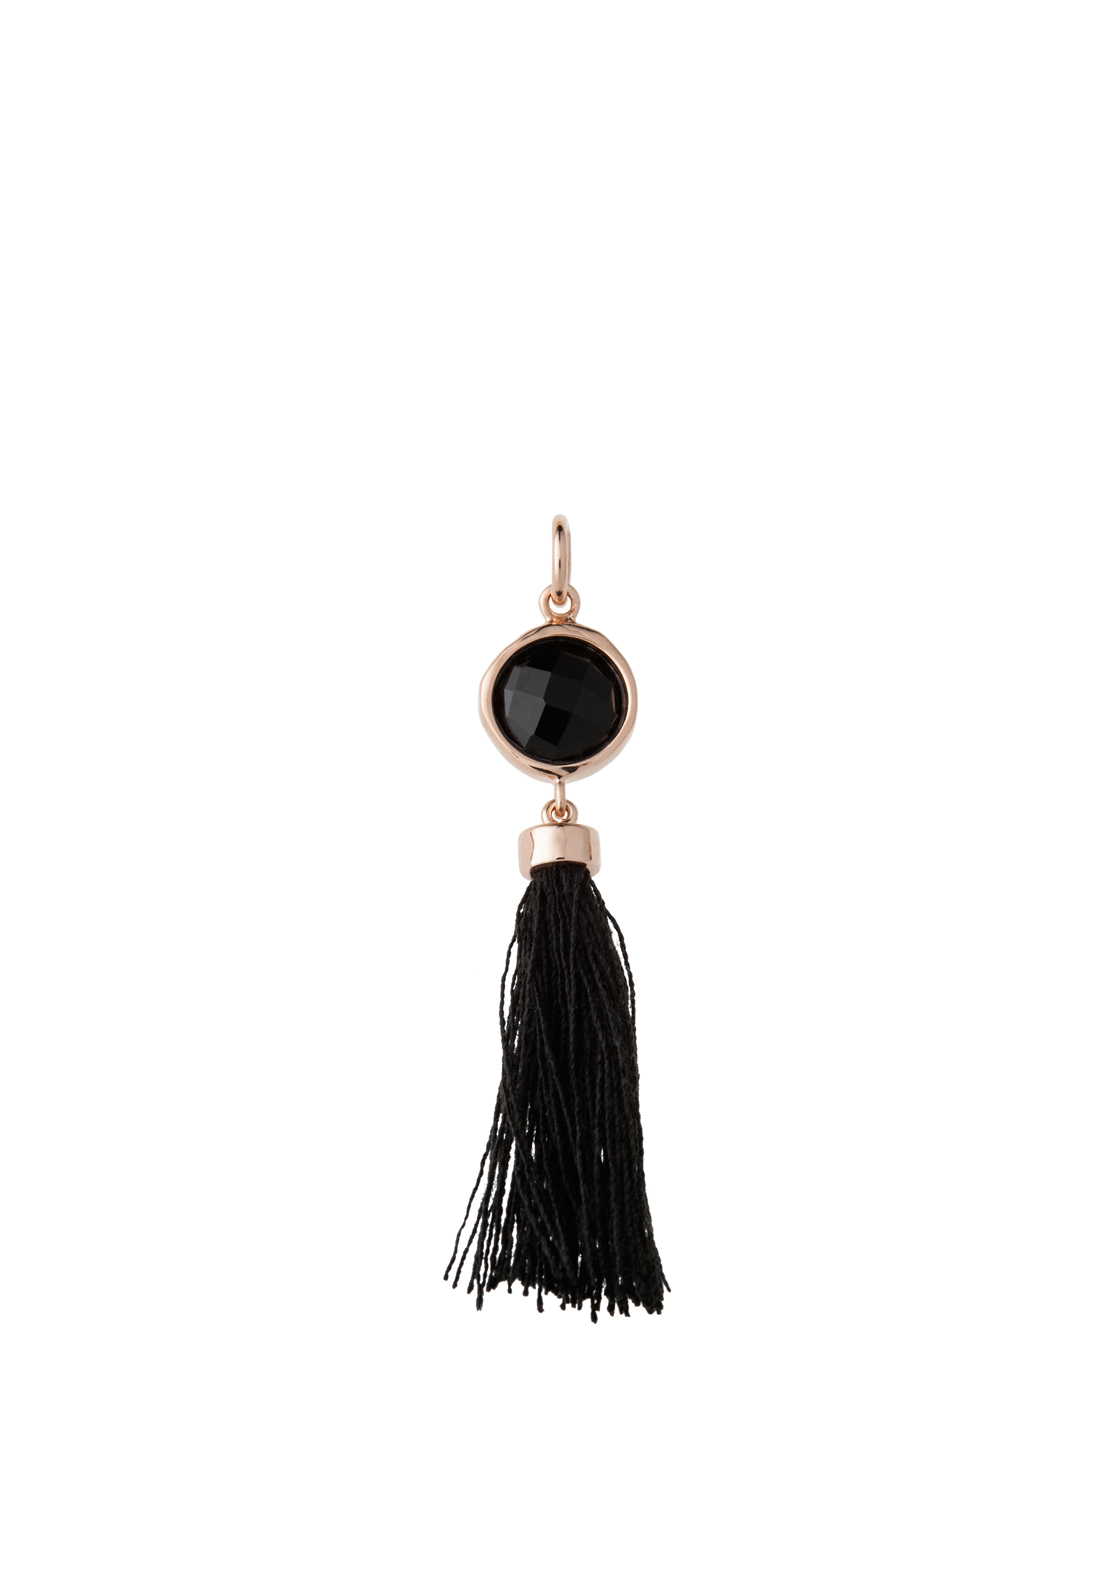 Kirstin Ash Black Cord Tassle Necklace Charm, Rose-Gold Plated